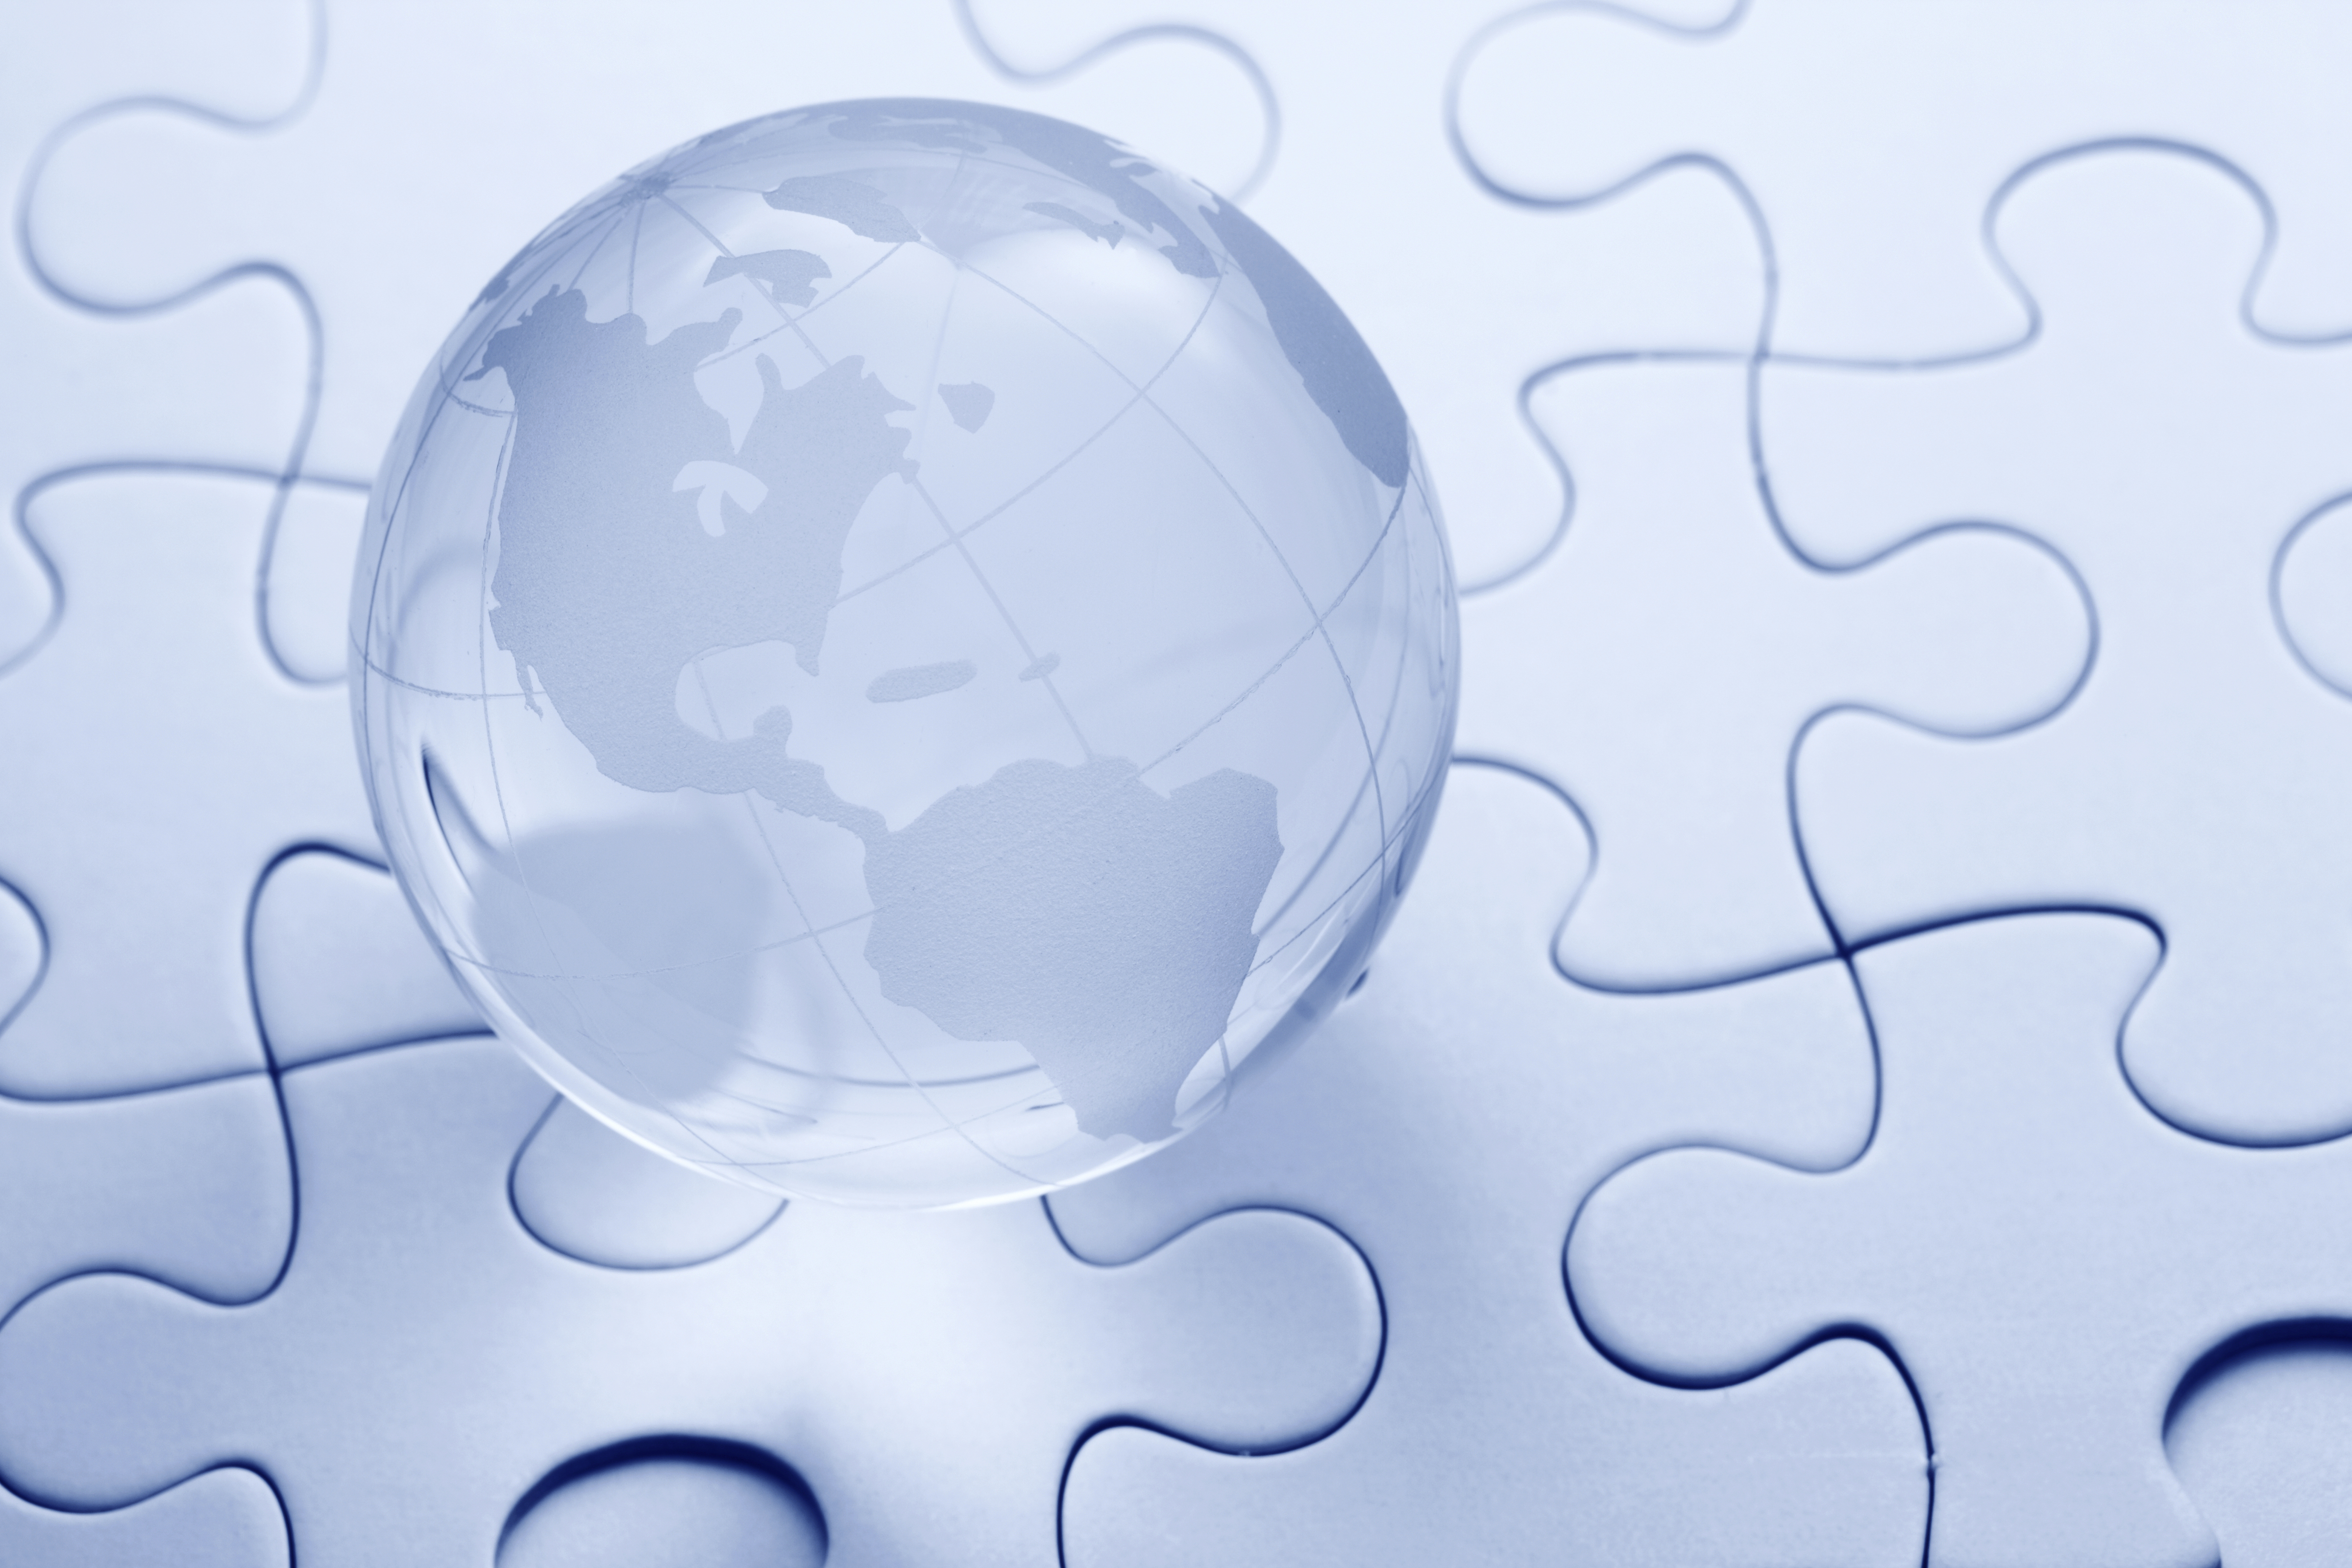 Global-Puzzle (1)